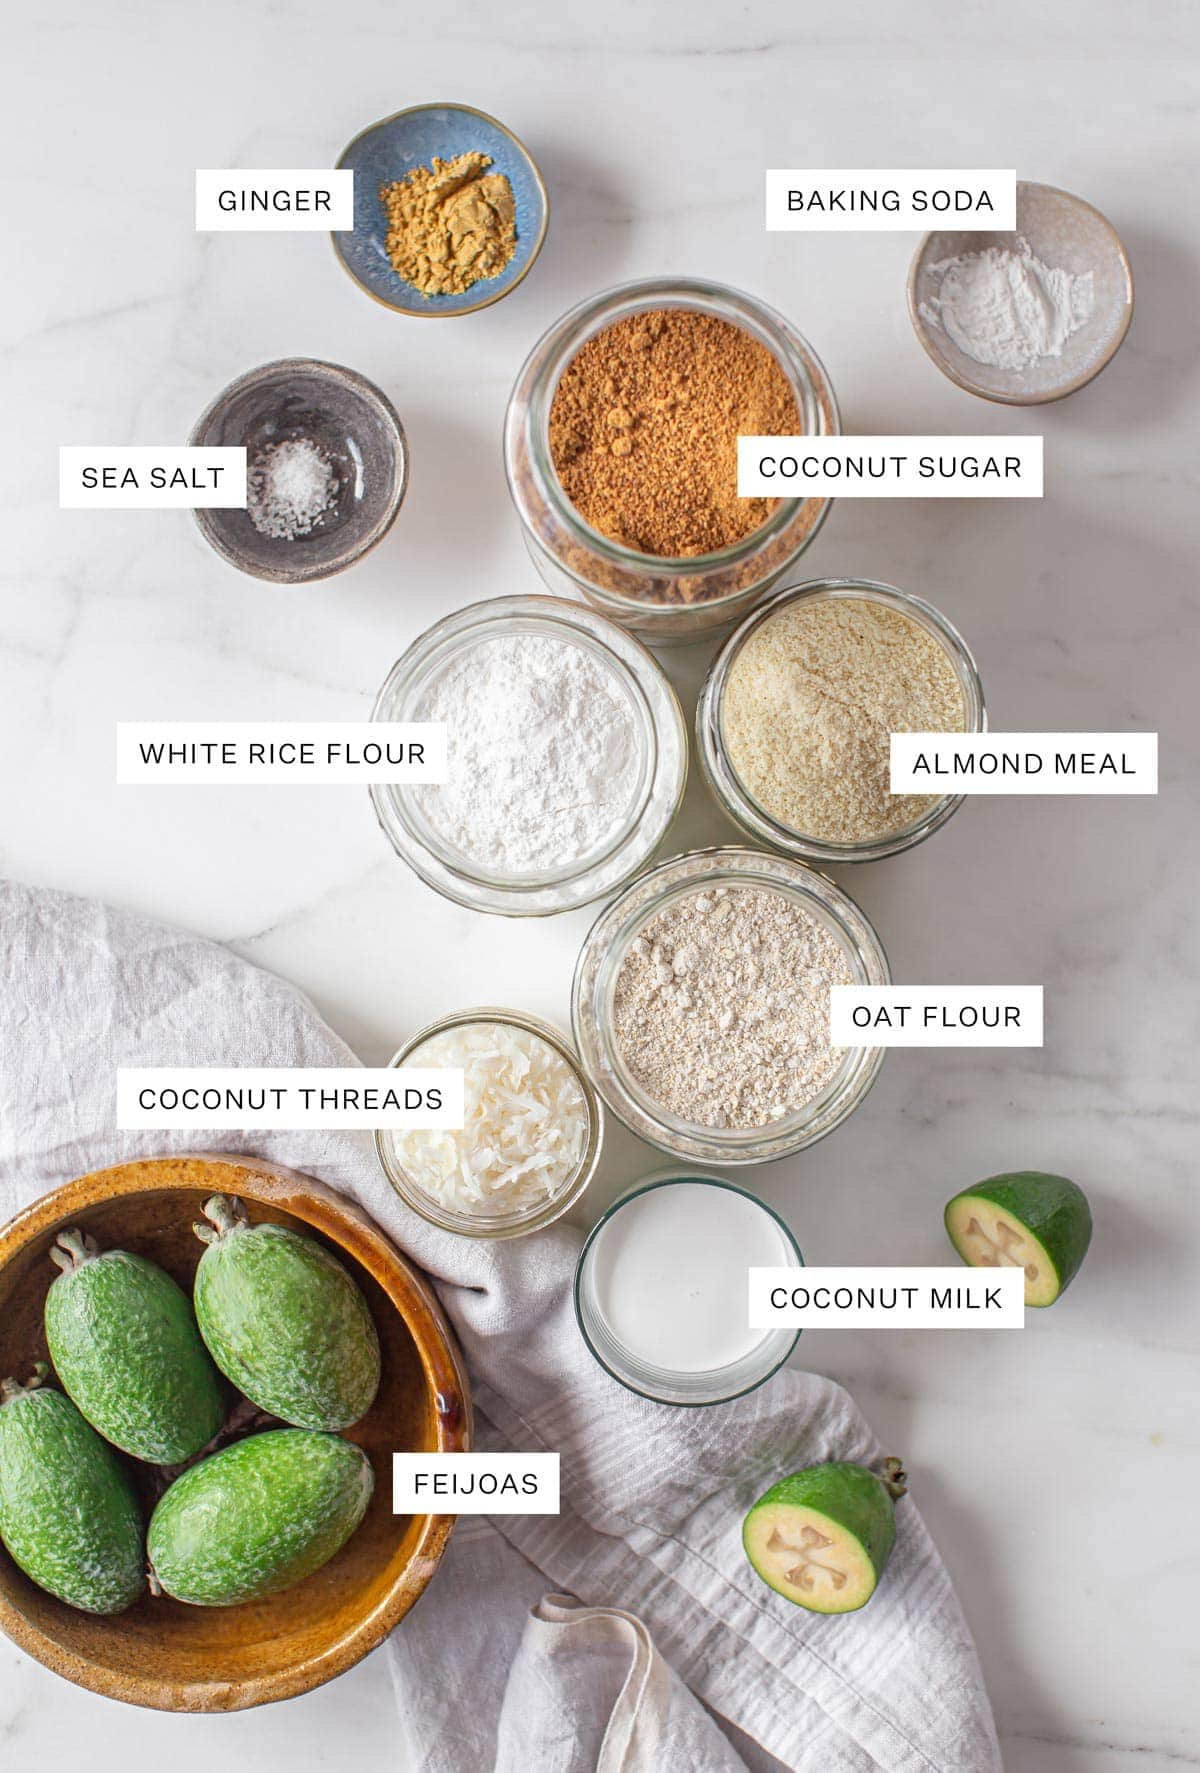 Flat lay of all the ingredients needed to make this recipe - fresh feijoas, open jars of sugar and flours, pinch bowls filled with spices, coconut milk